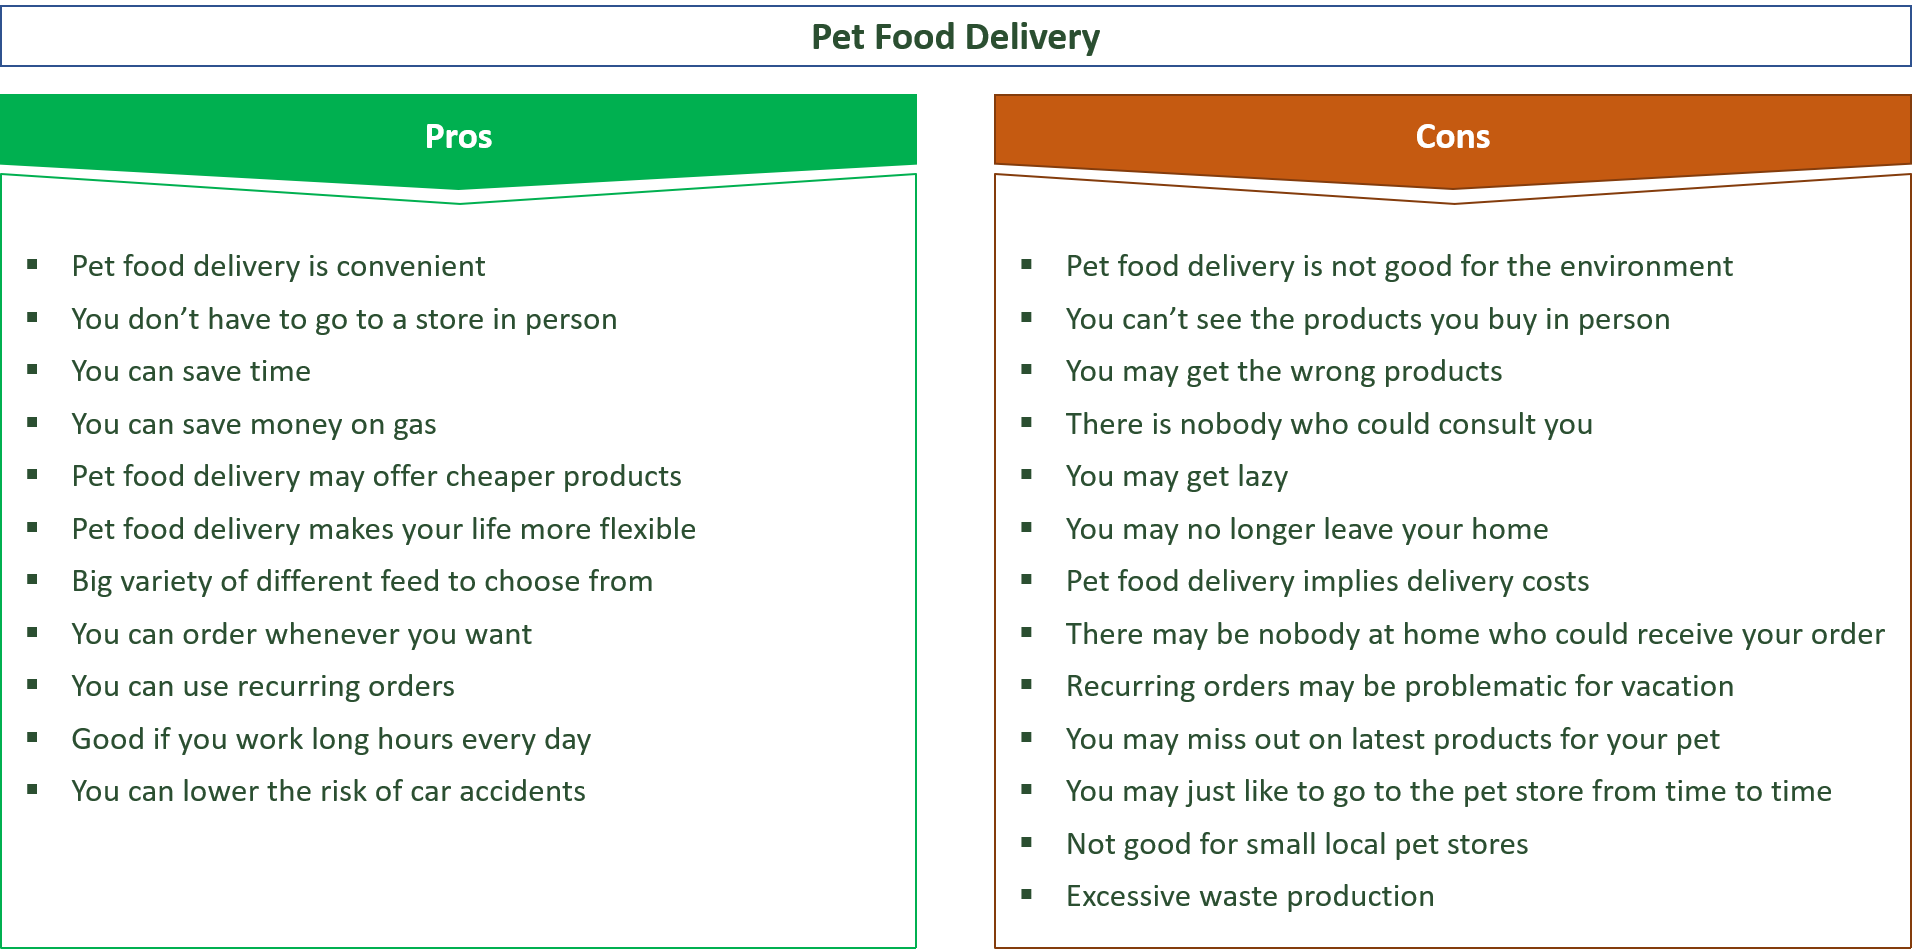 advantages and disadvantages of pet food delivery